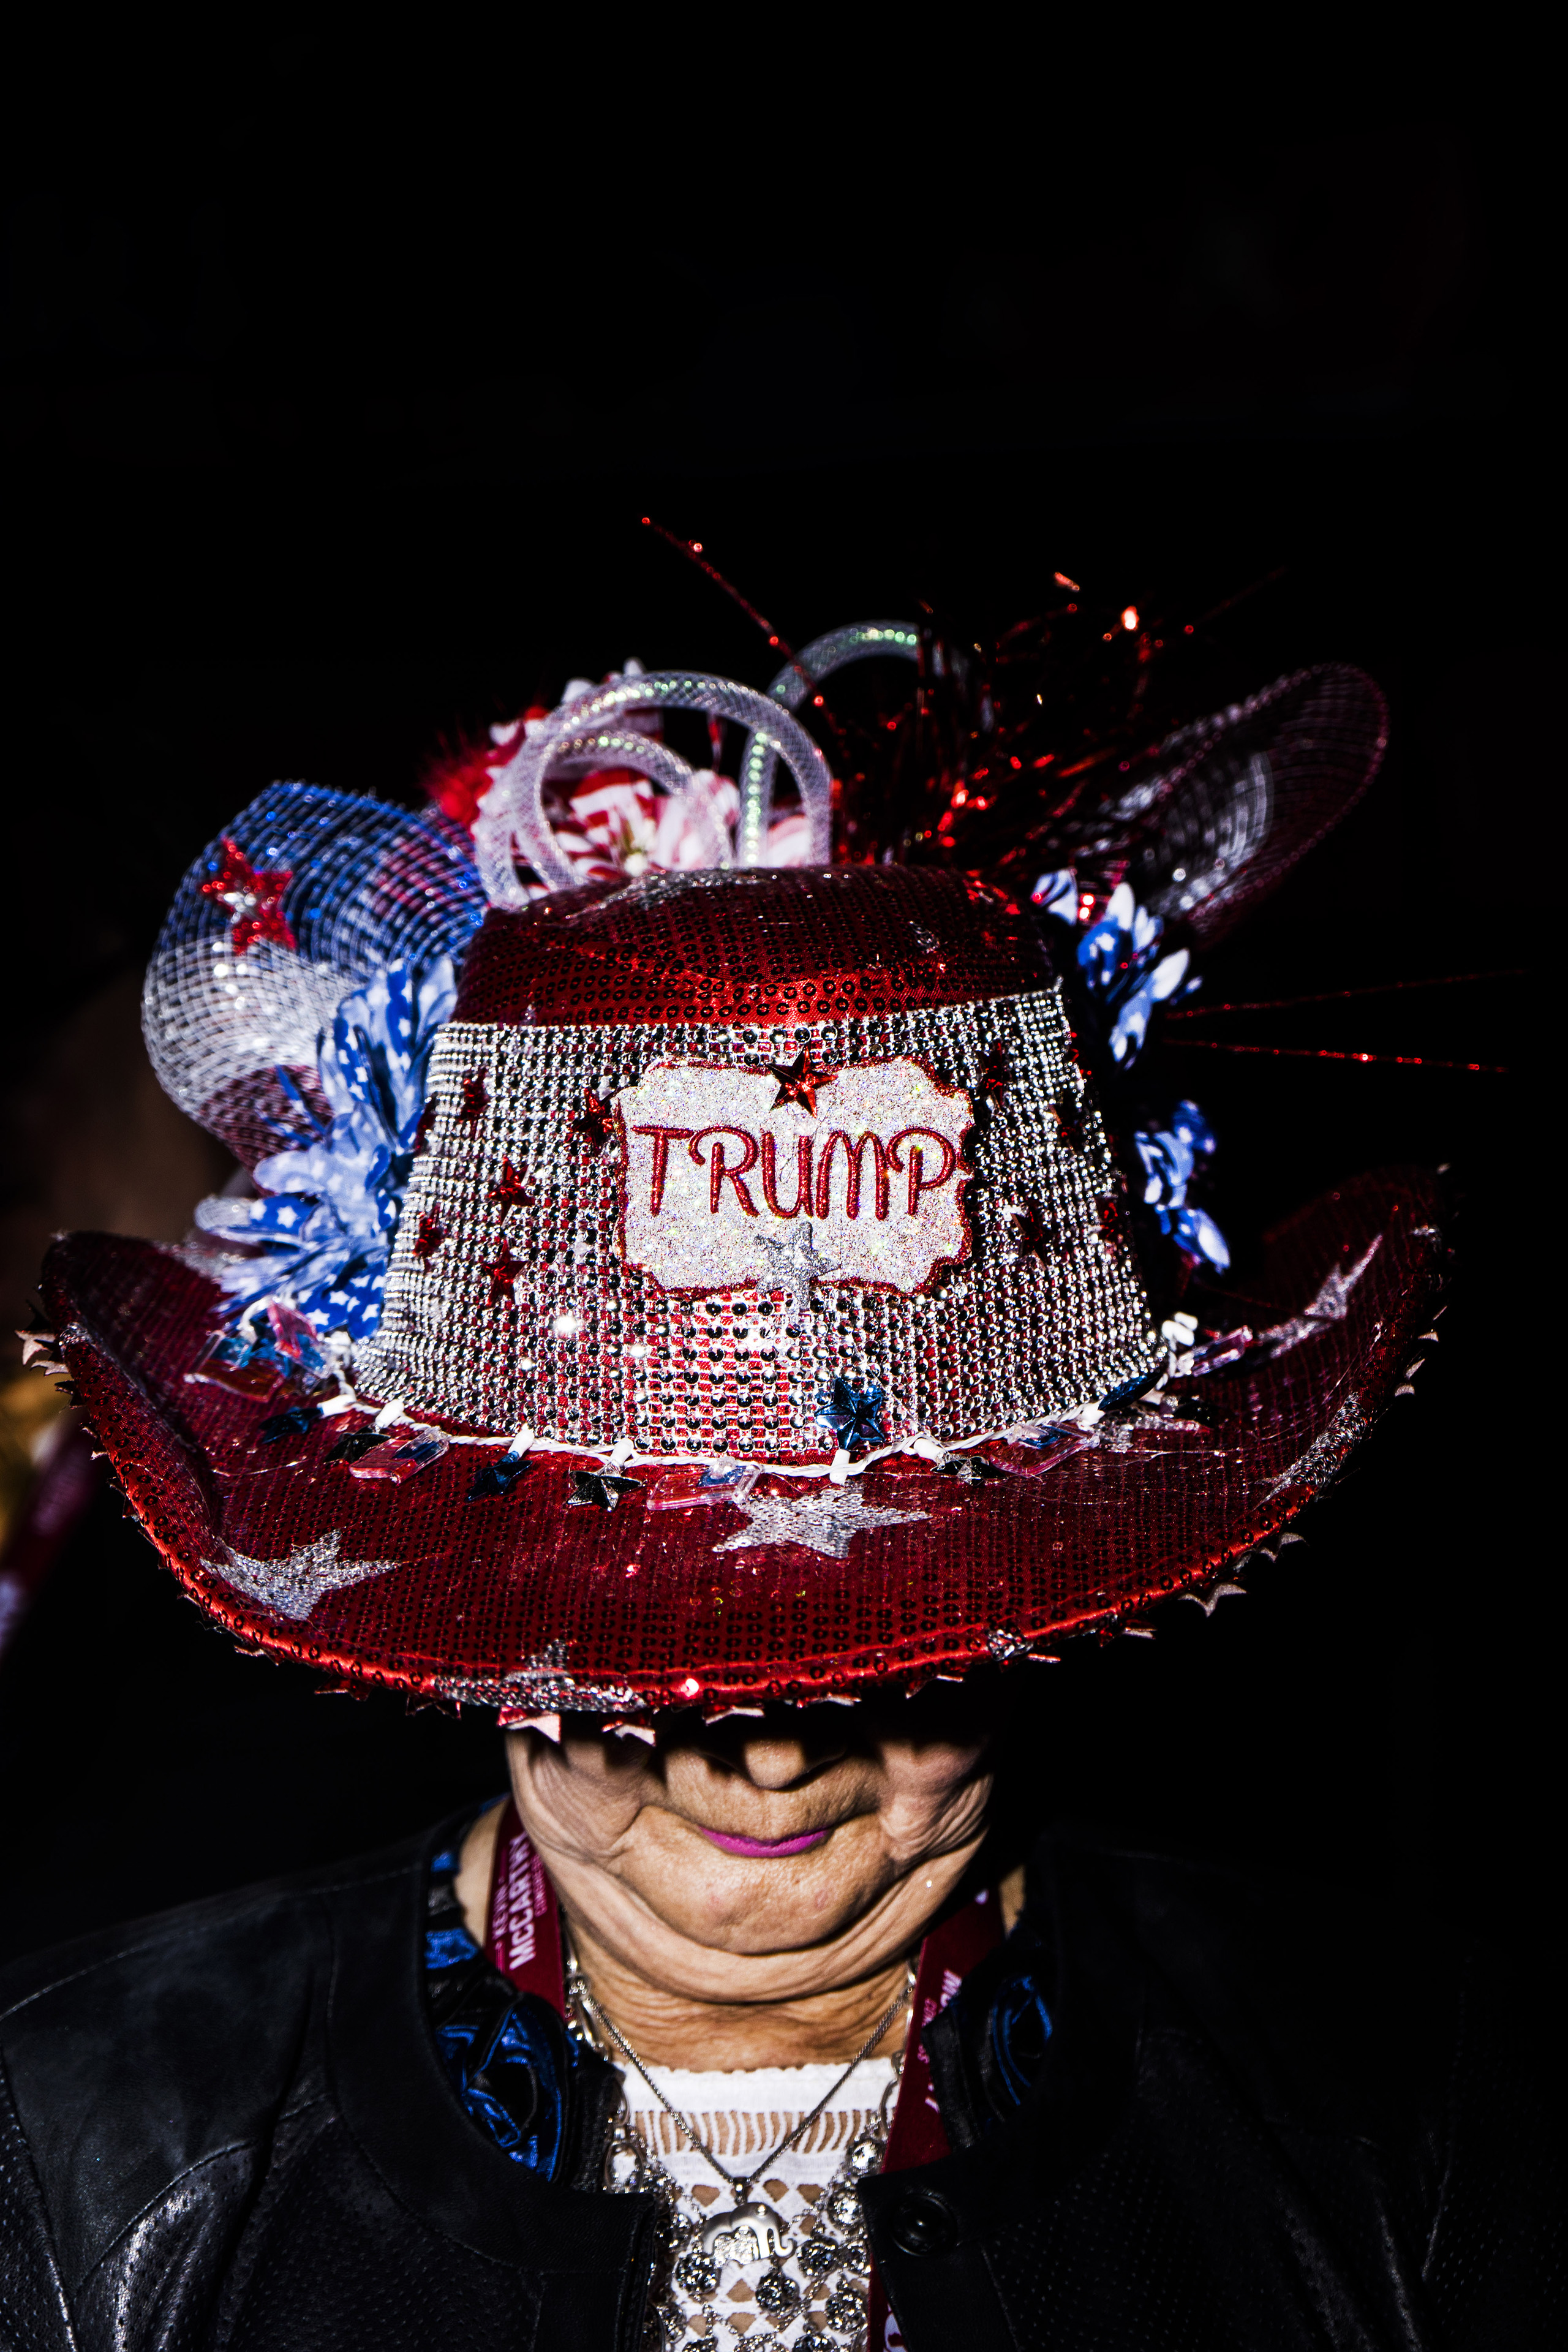 A festive Trump hat at the Republican National Convention (RNC) in Cleveland, Ohio, U.S., on Monday, July 20, 2016.